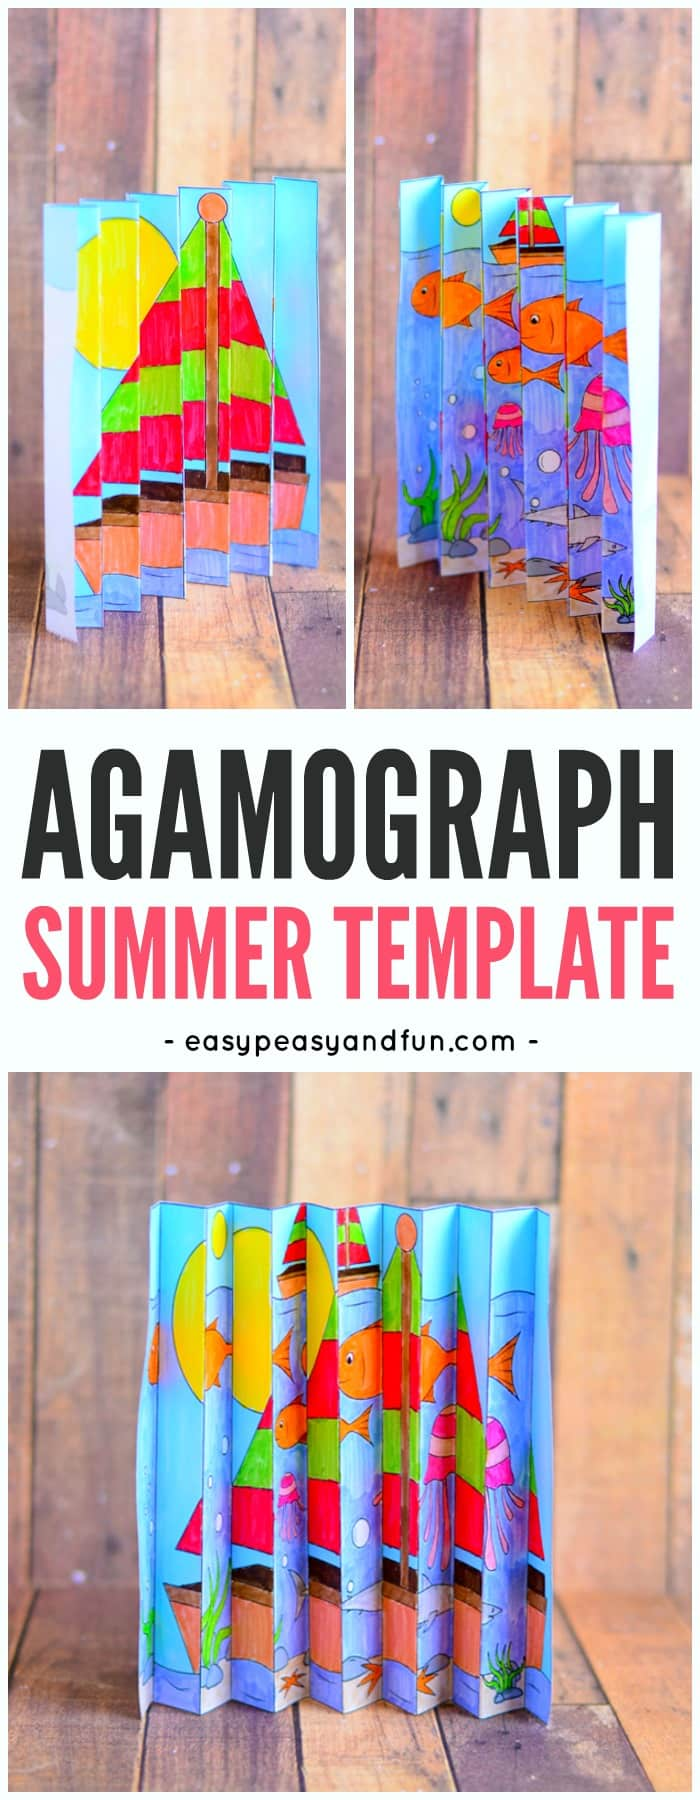 Summer Agamograph Template Easy Peasy And Fun